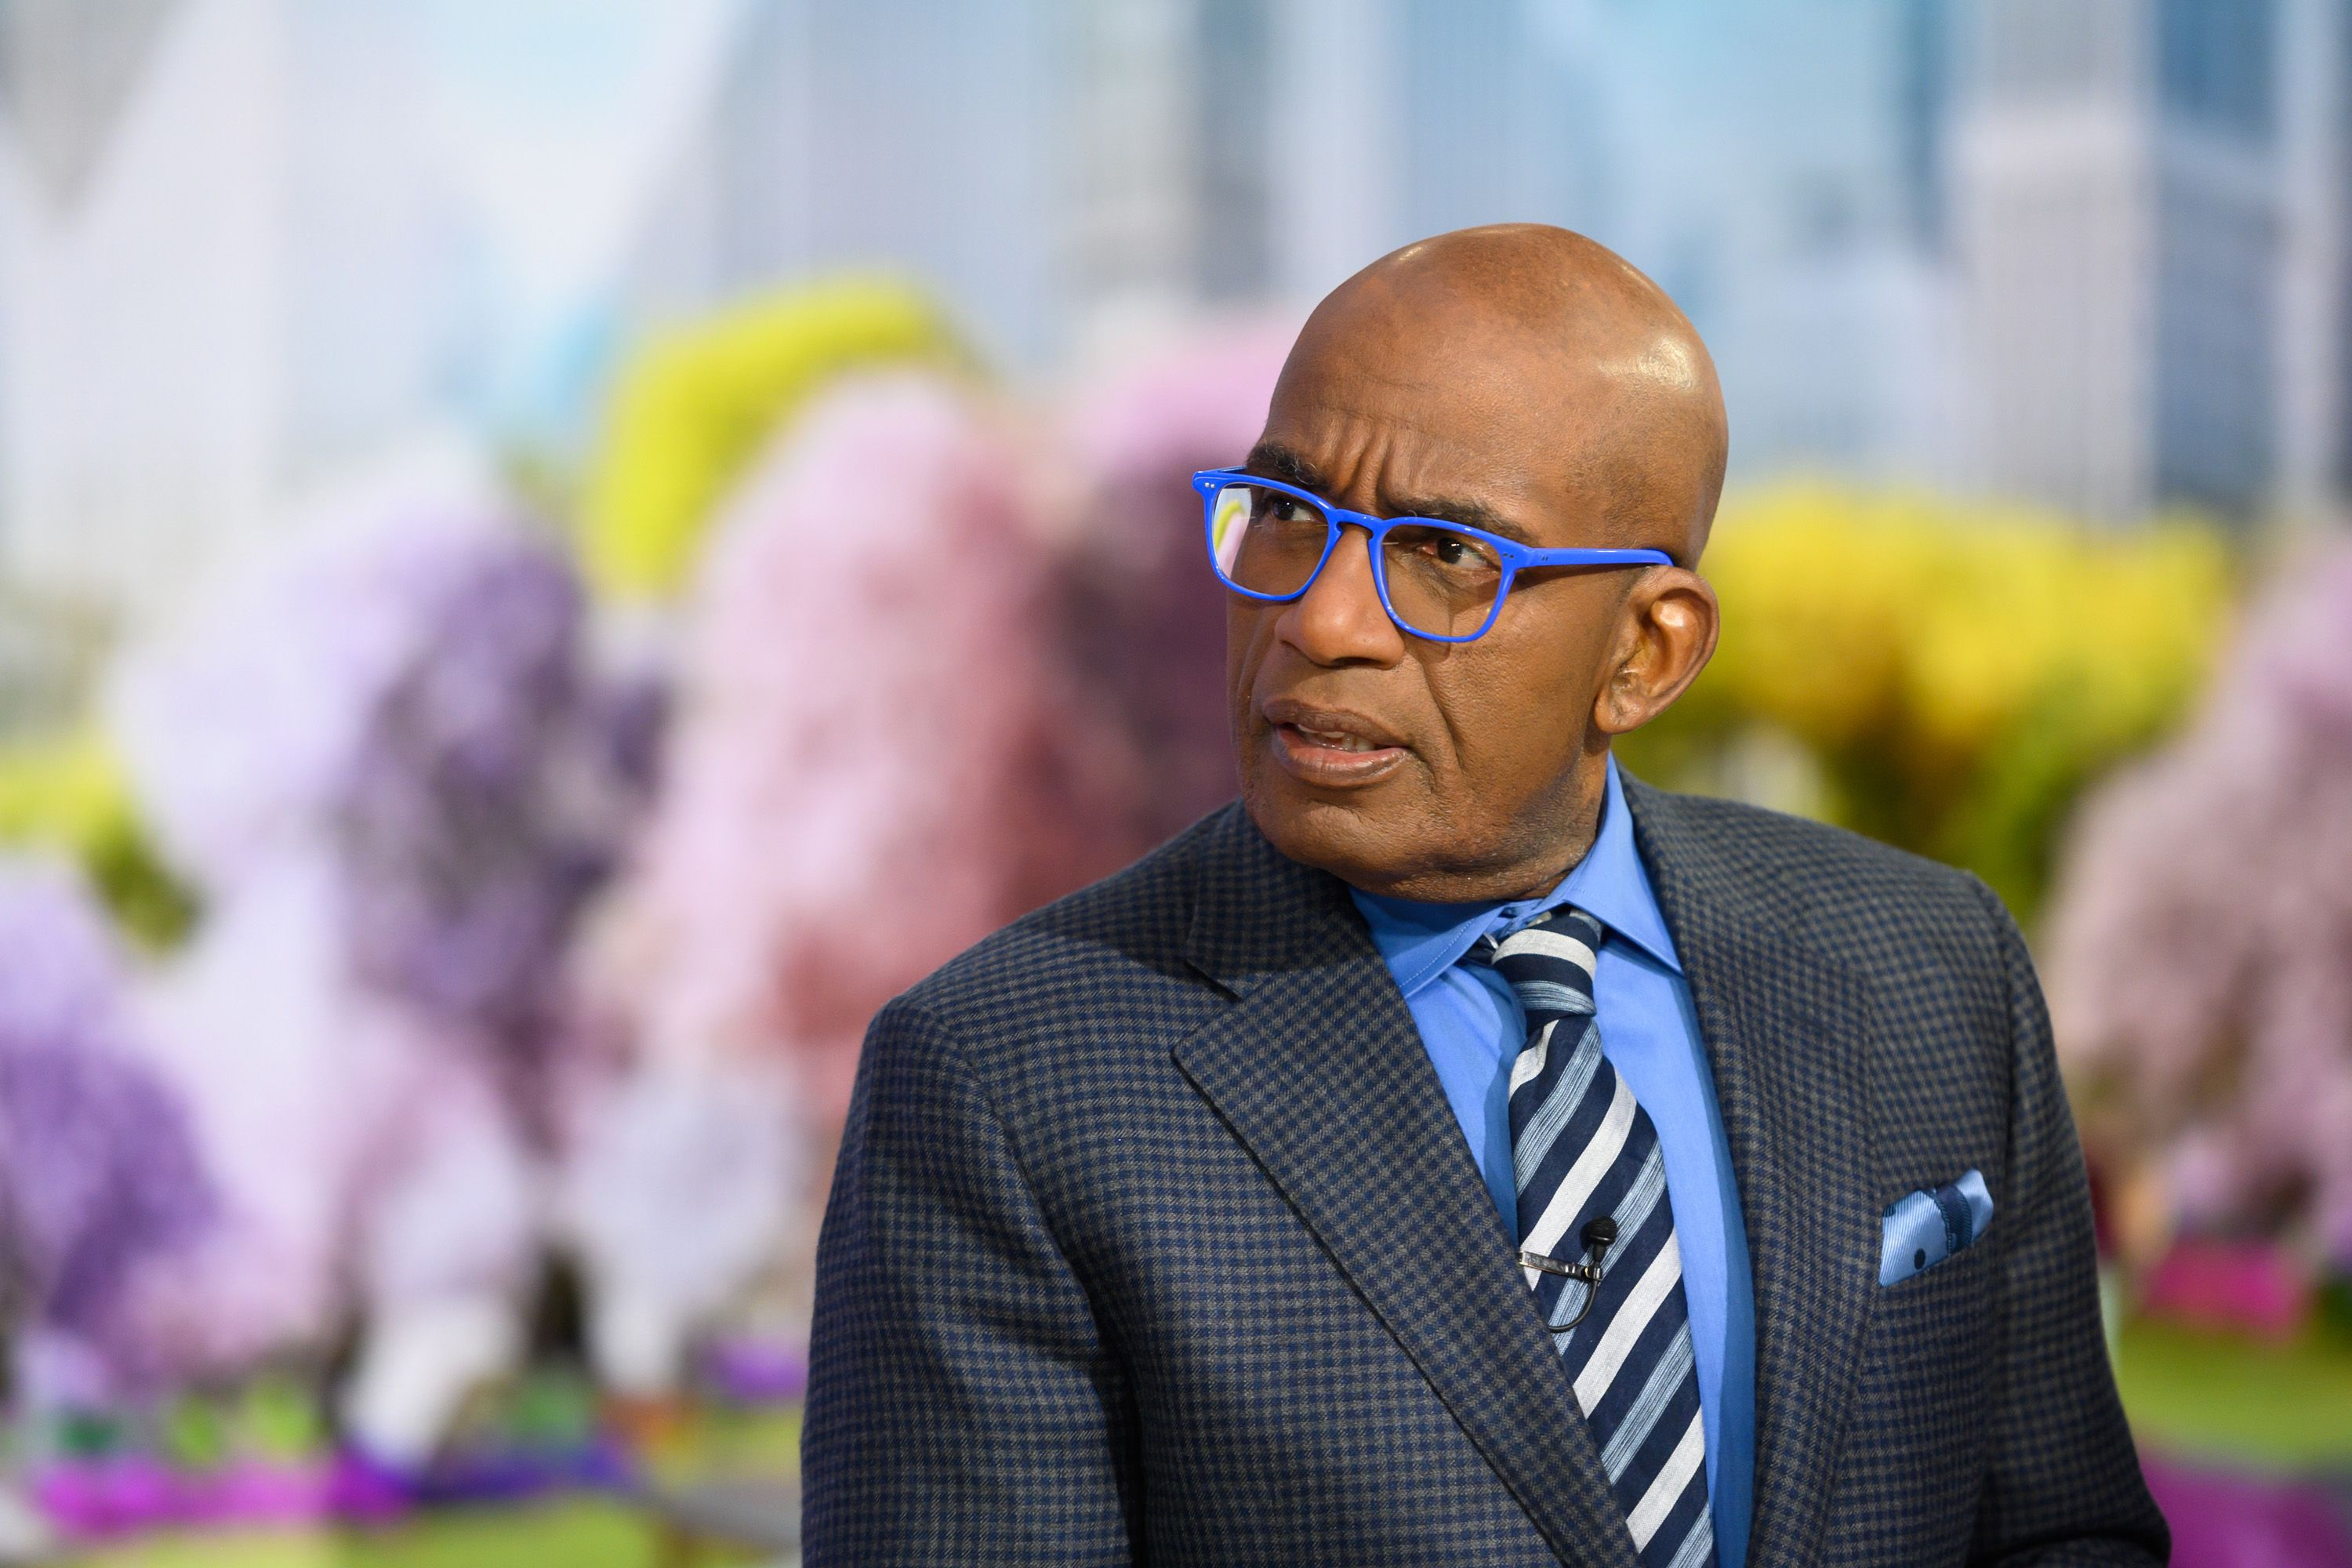 Al Roker at Today - Season 68 on Wednesday, March 27, 2019 | Photo: Getty Images